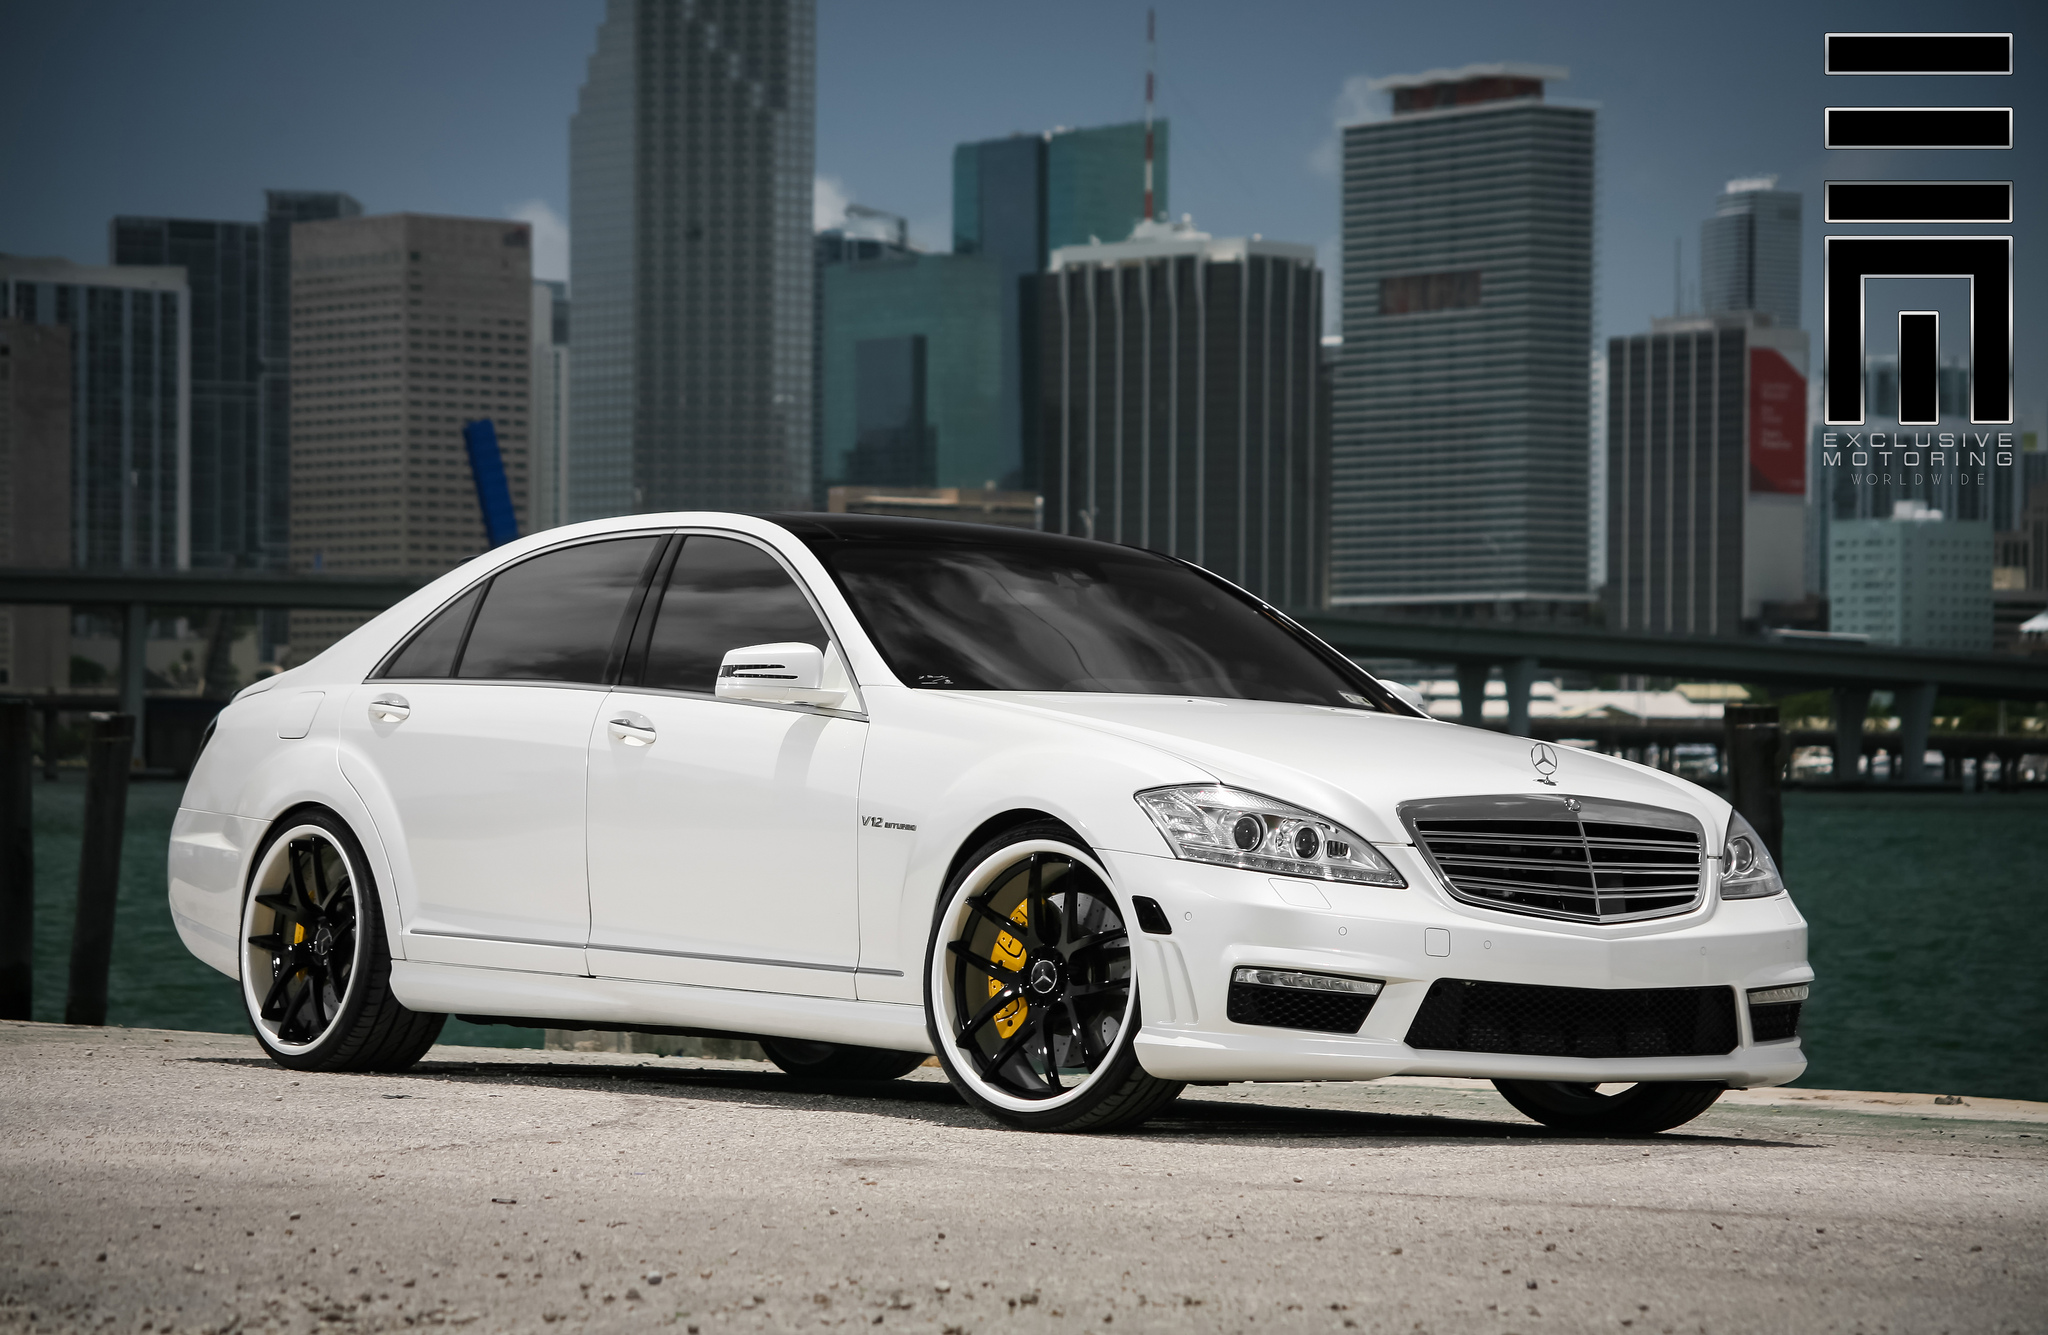 Giovanna Monza Custom Painted on Mercedes Benz  S65AMG